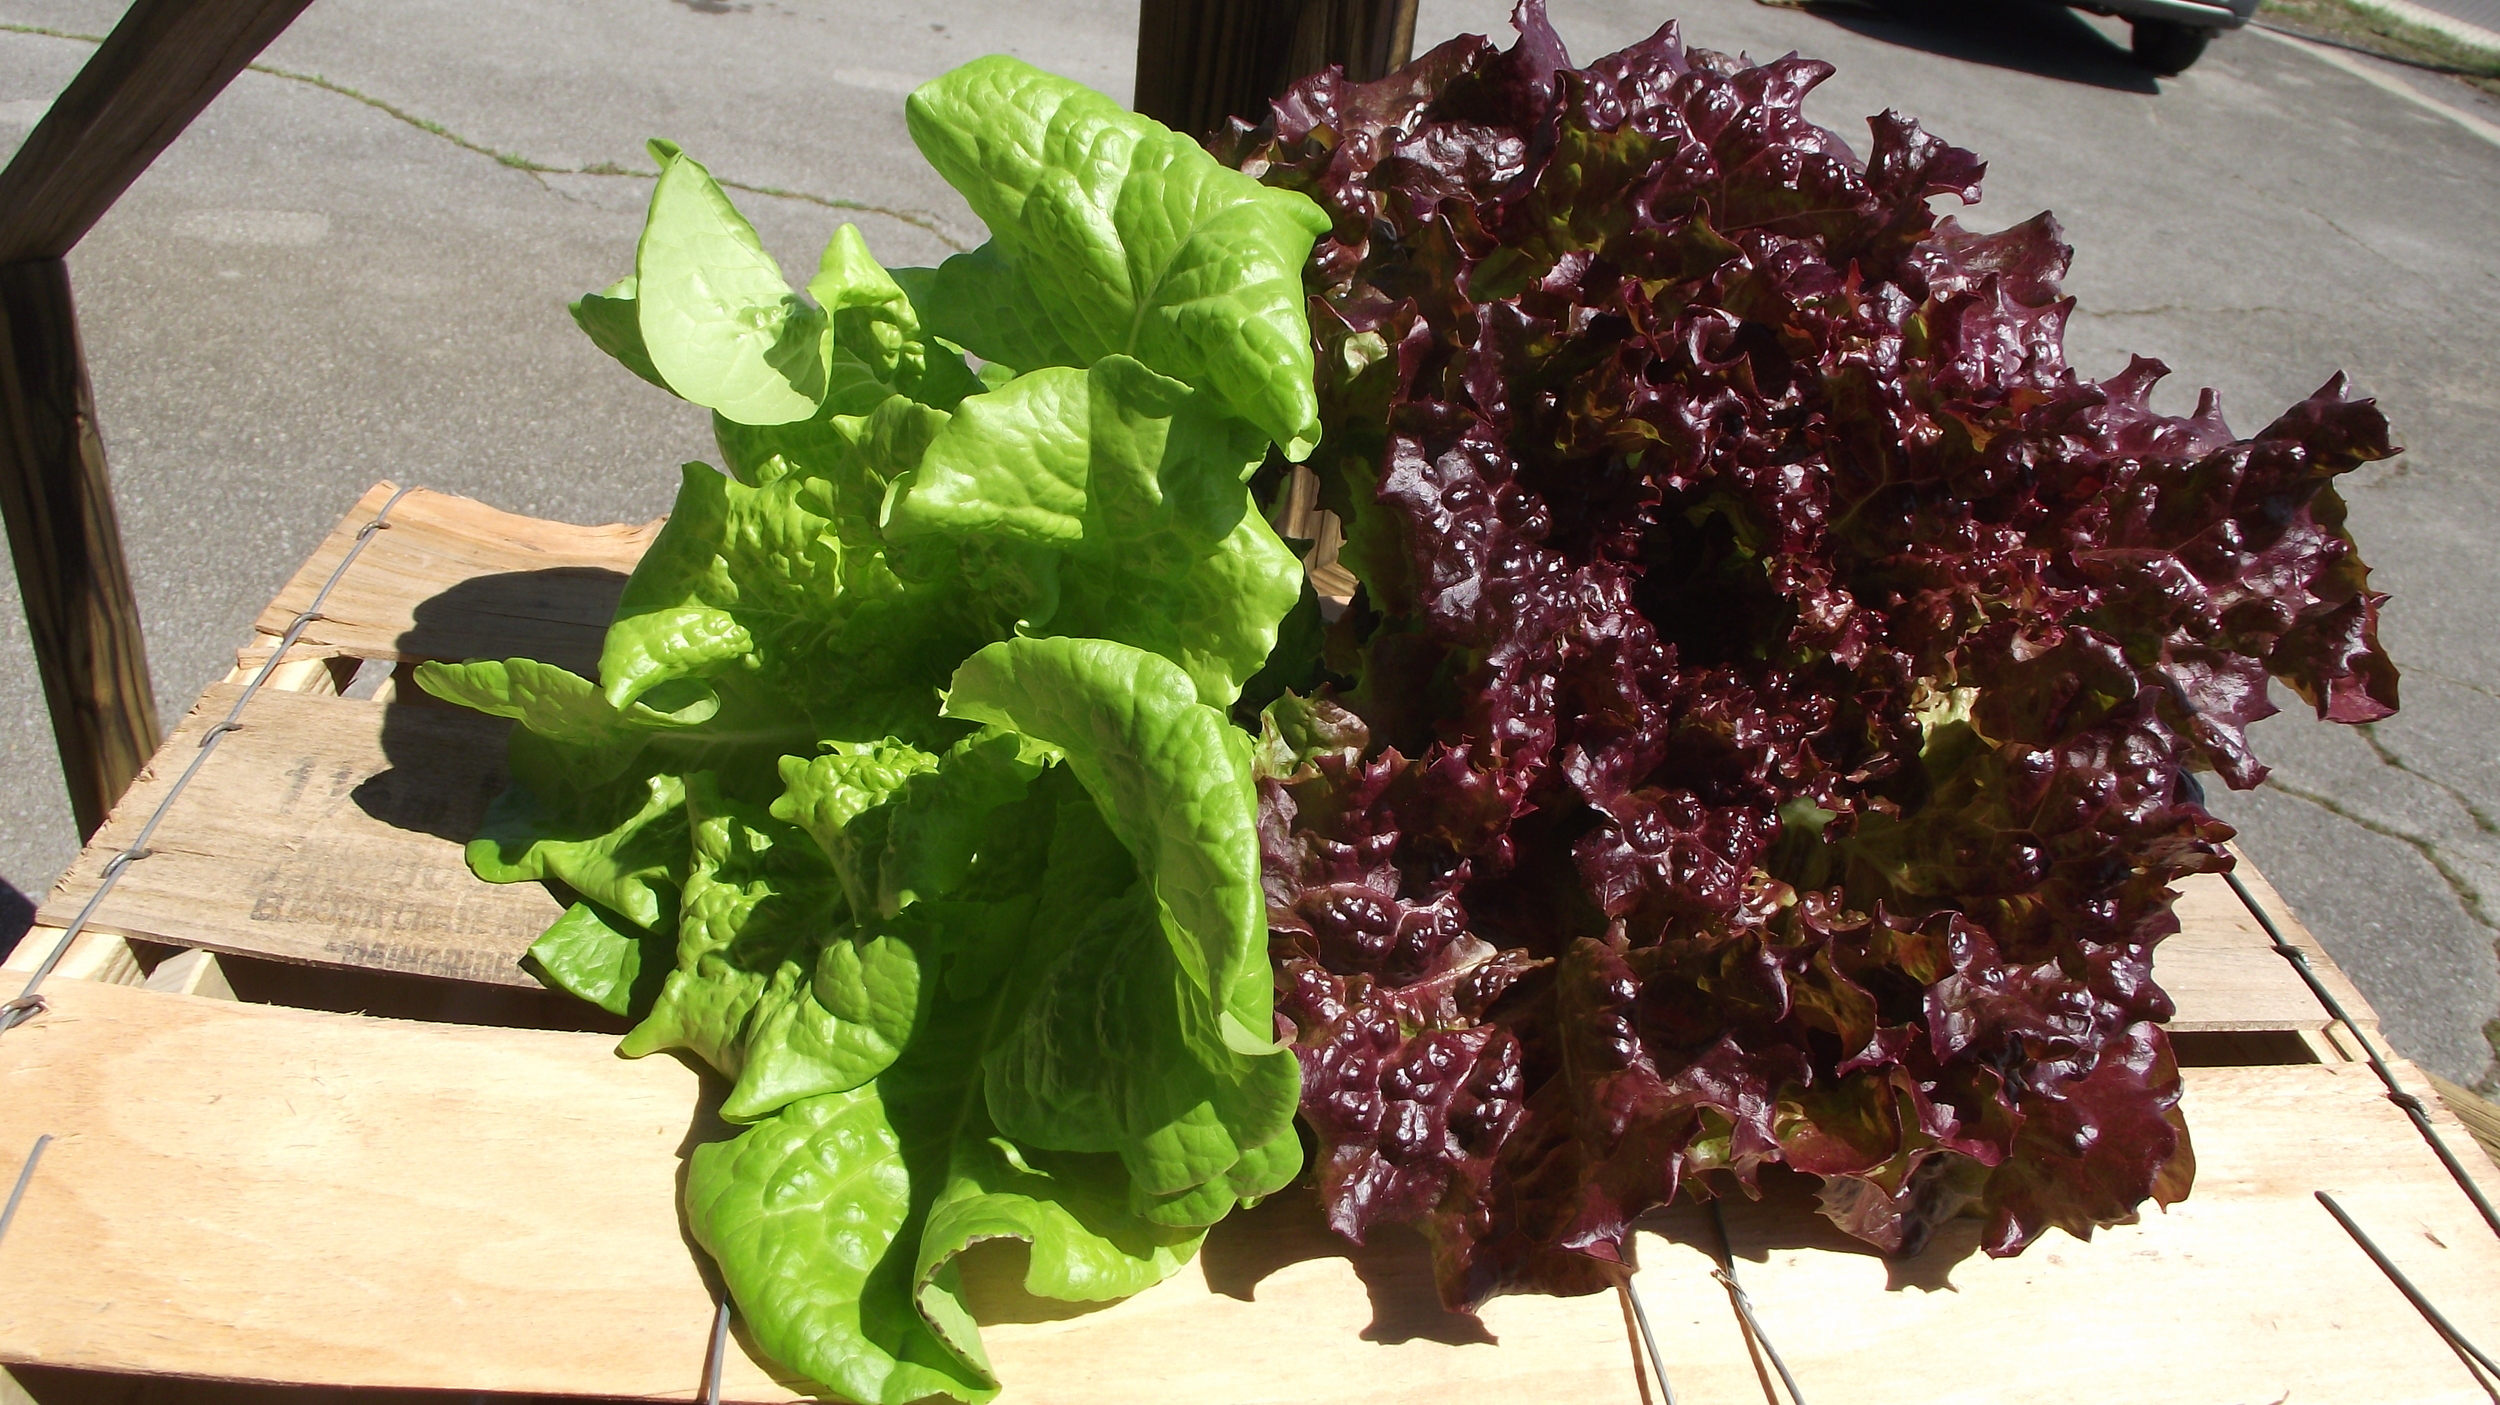 Hydroponic lettuce from our City Farm.